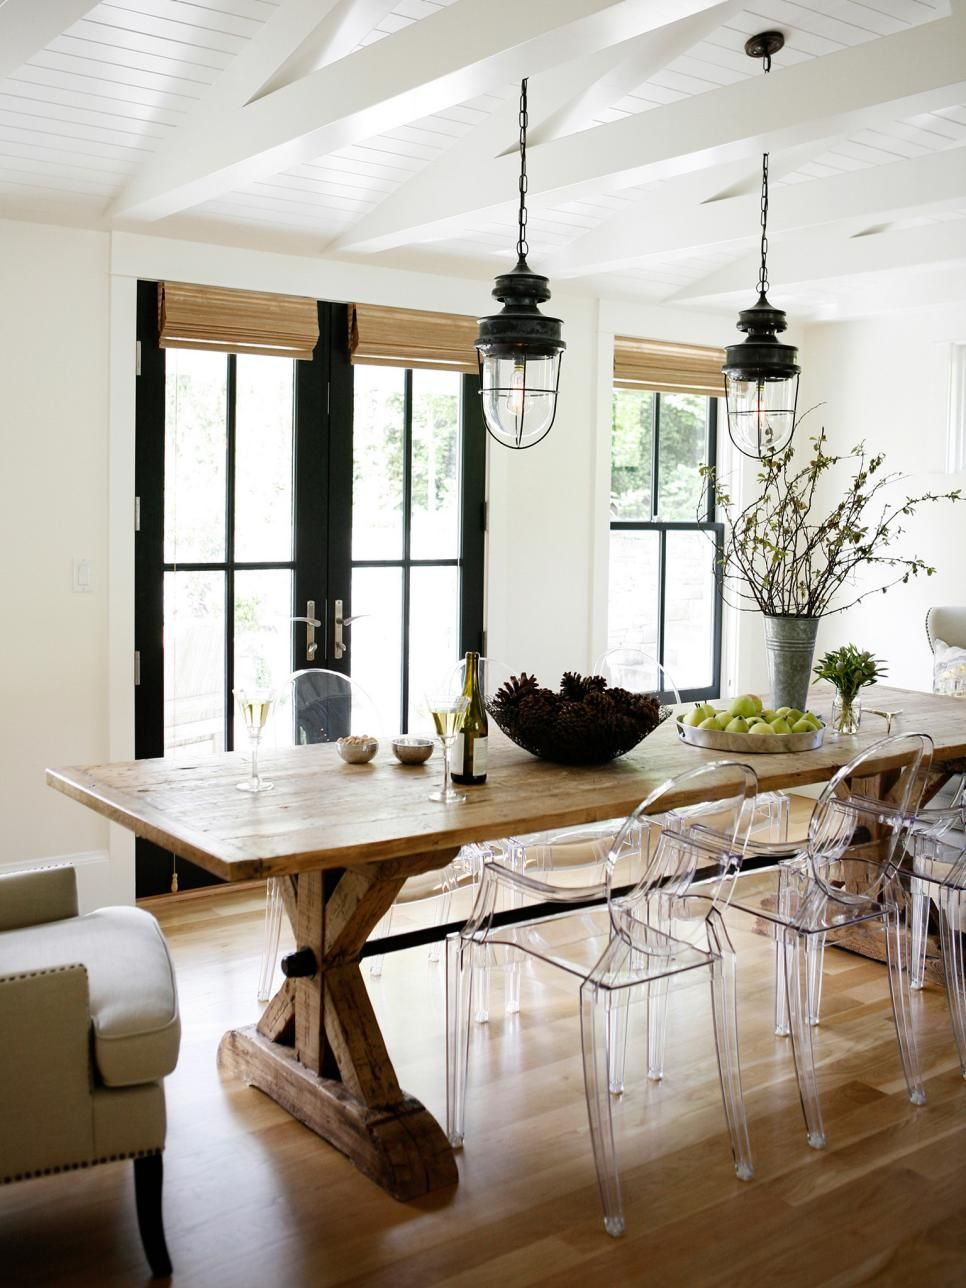 Kitchen Room Interior Design: Rustic Meets Refined: 15 Ways To Add Farmhouse Style